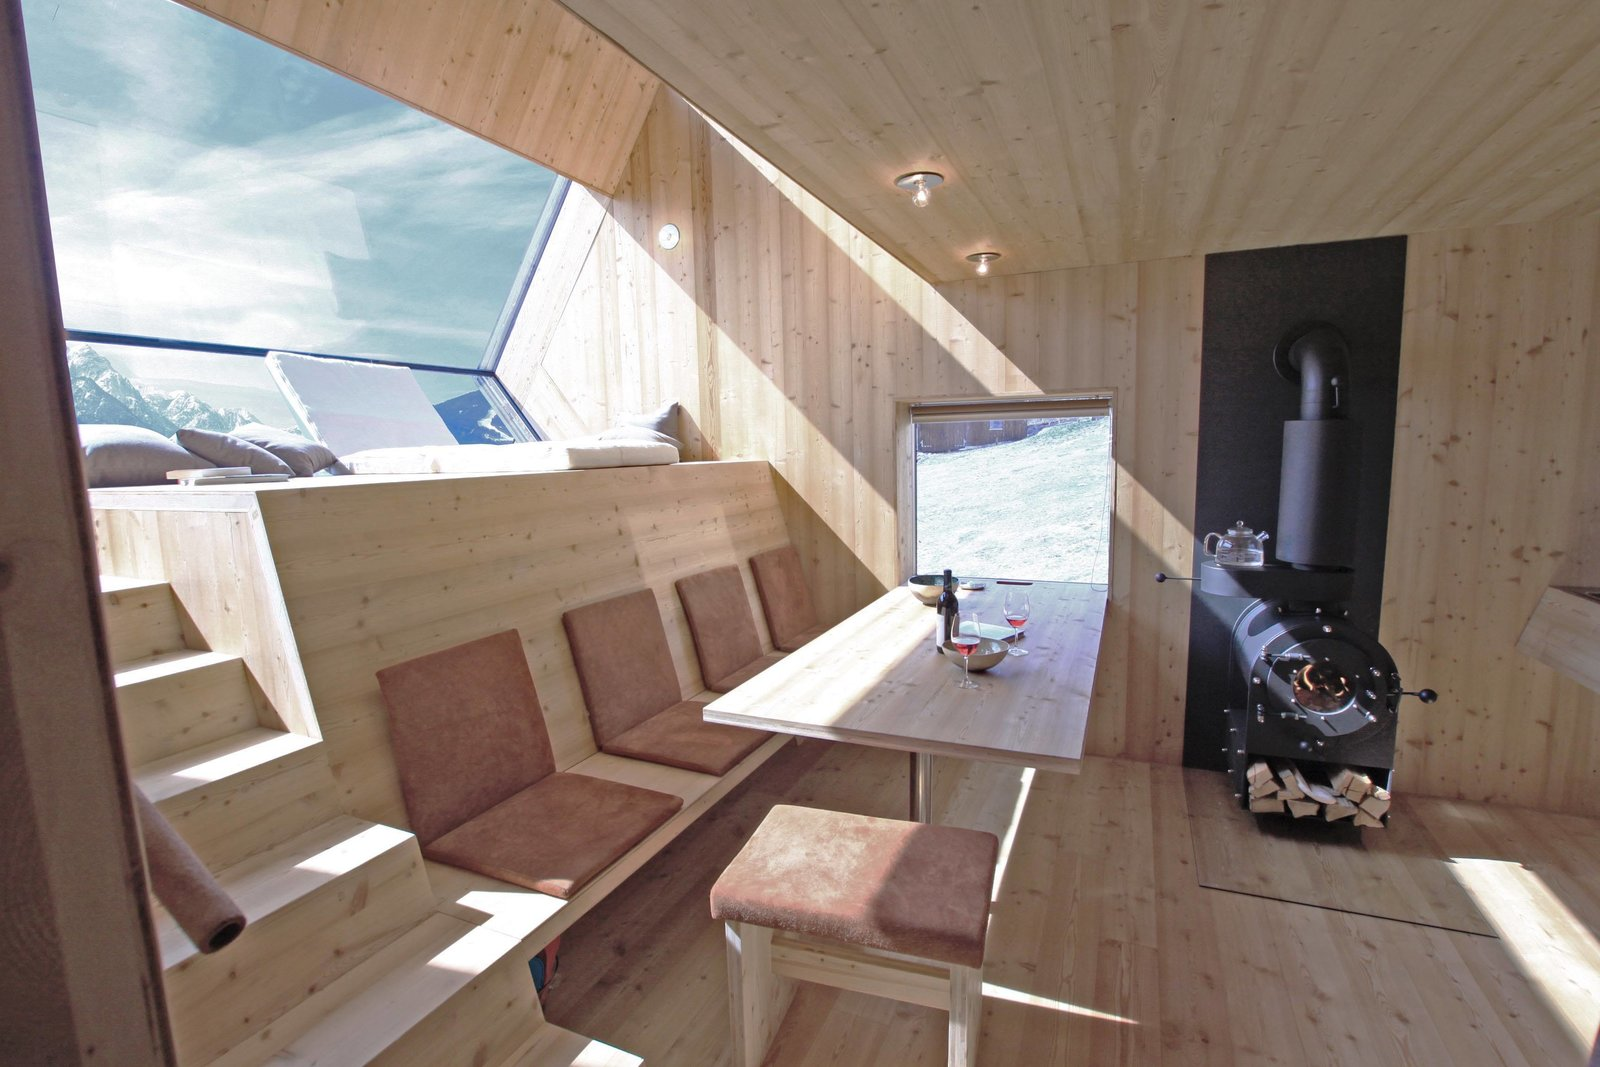 Dining, Bench, Table, Stools, Light Hardwood, Ceiling, Wood Burning, and Wall On the upper level, underneath a domed roof, sleeping areas and a bathroom allow guests to once again enjoy views of the mountains—this time from under a rain shower.   Best Dining Wood Burning Wall Photos from Stay in a Tiny Shingled Cabin in Austria That Resembles a Bird-Like UFO